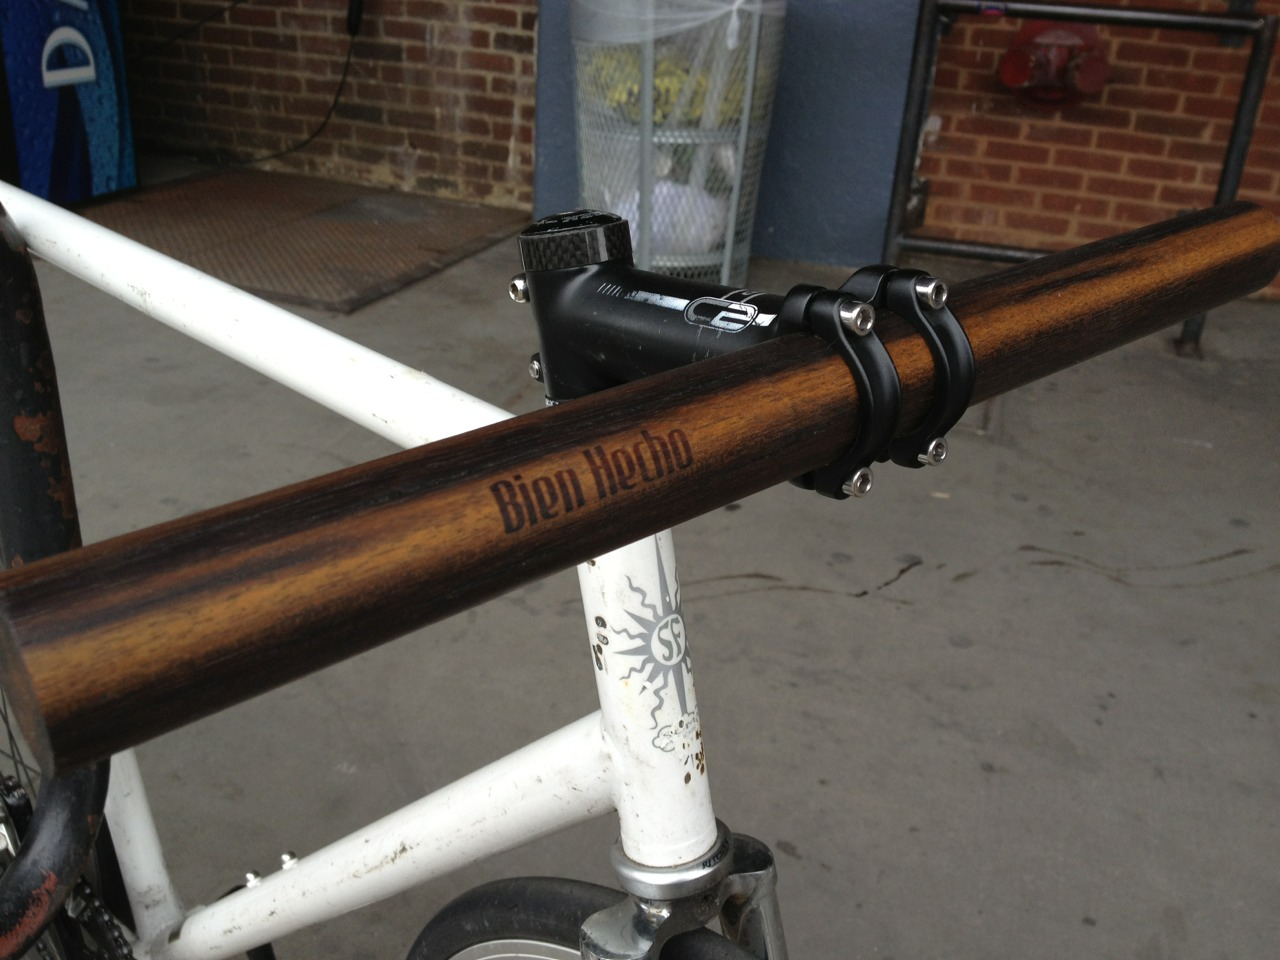 The latest iteration of bike handlebars: landfill rescued Coney Island boardwalk wood